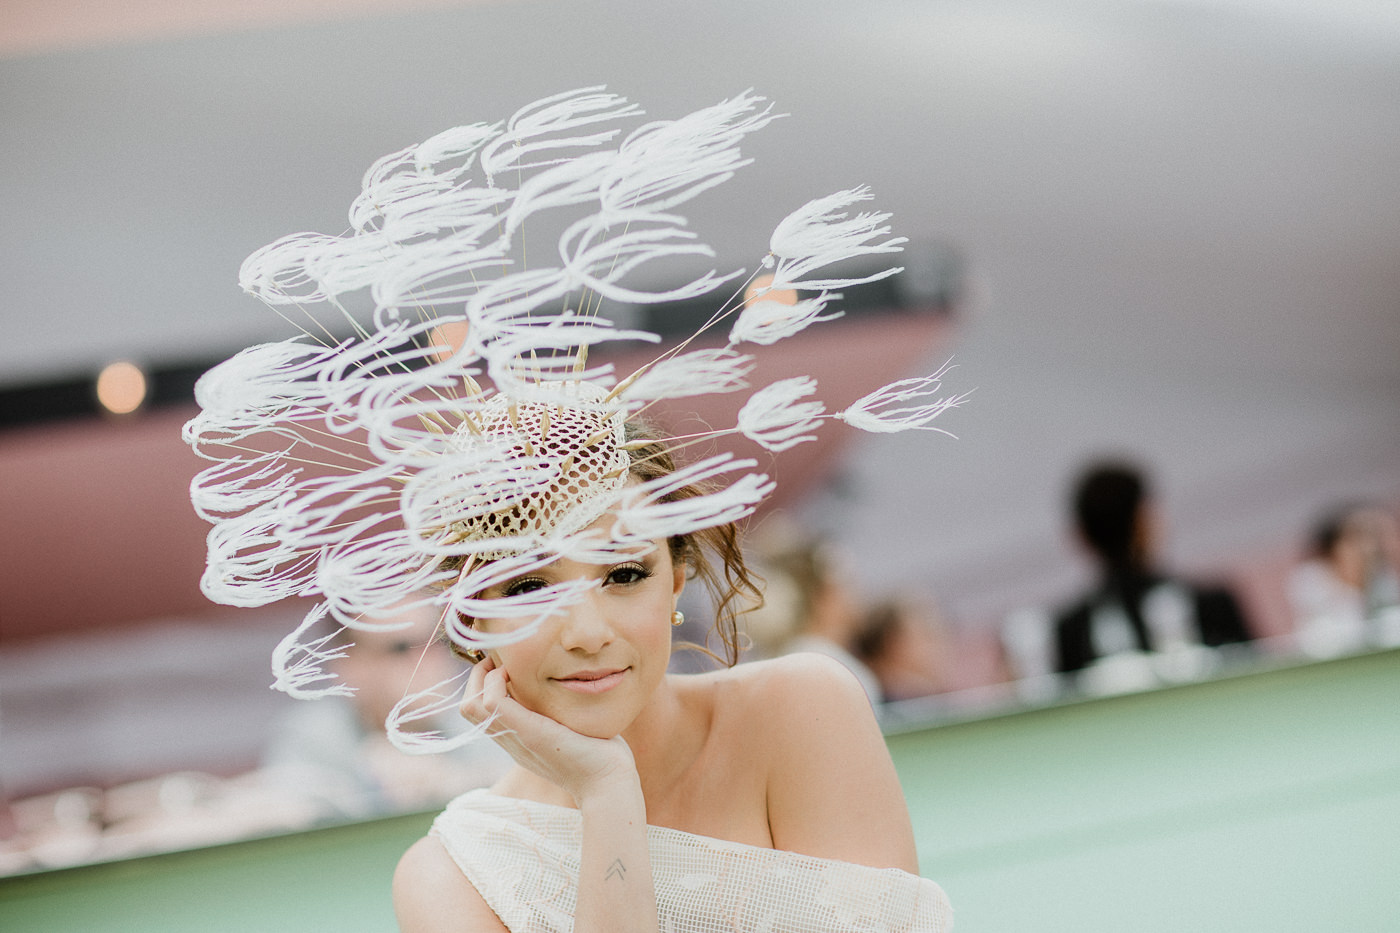 The dandelion headpiece - white feathers moving in wind ! The Pusteblume hat!